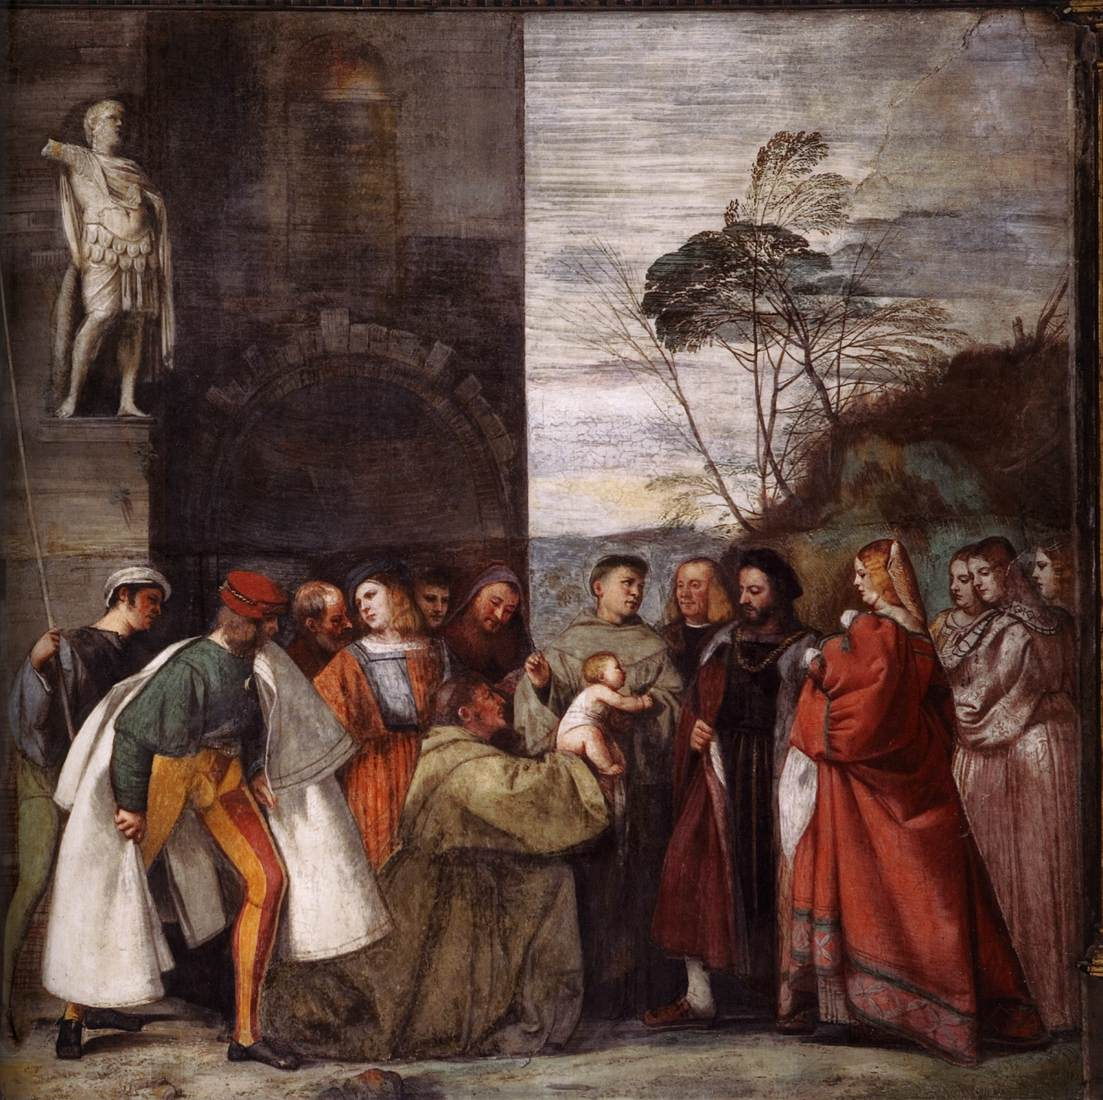 Titian, The miracle of the newborn child.